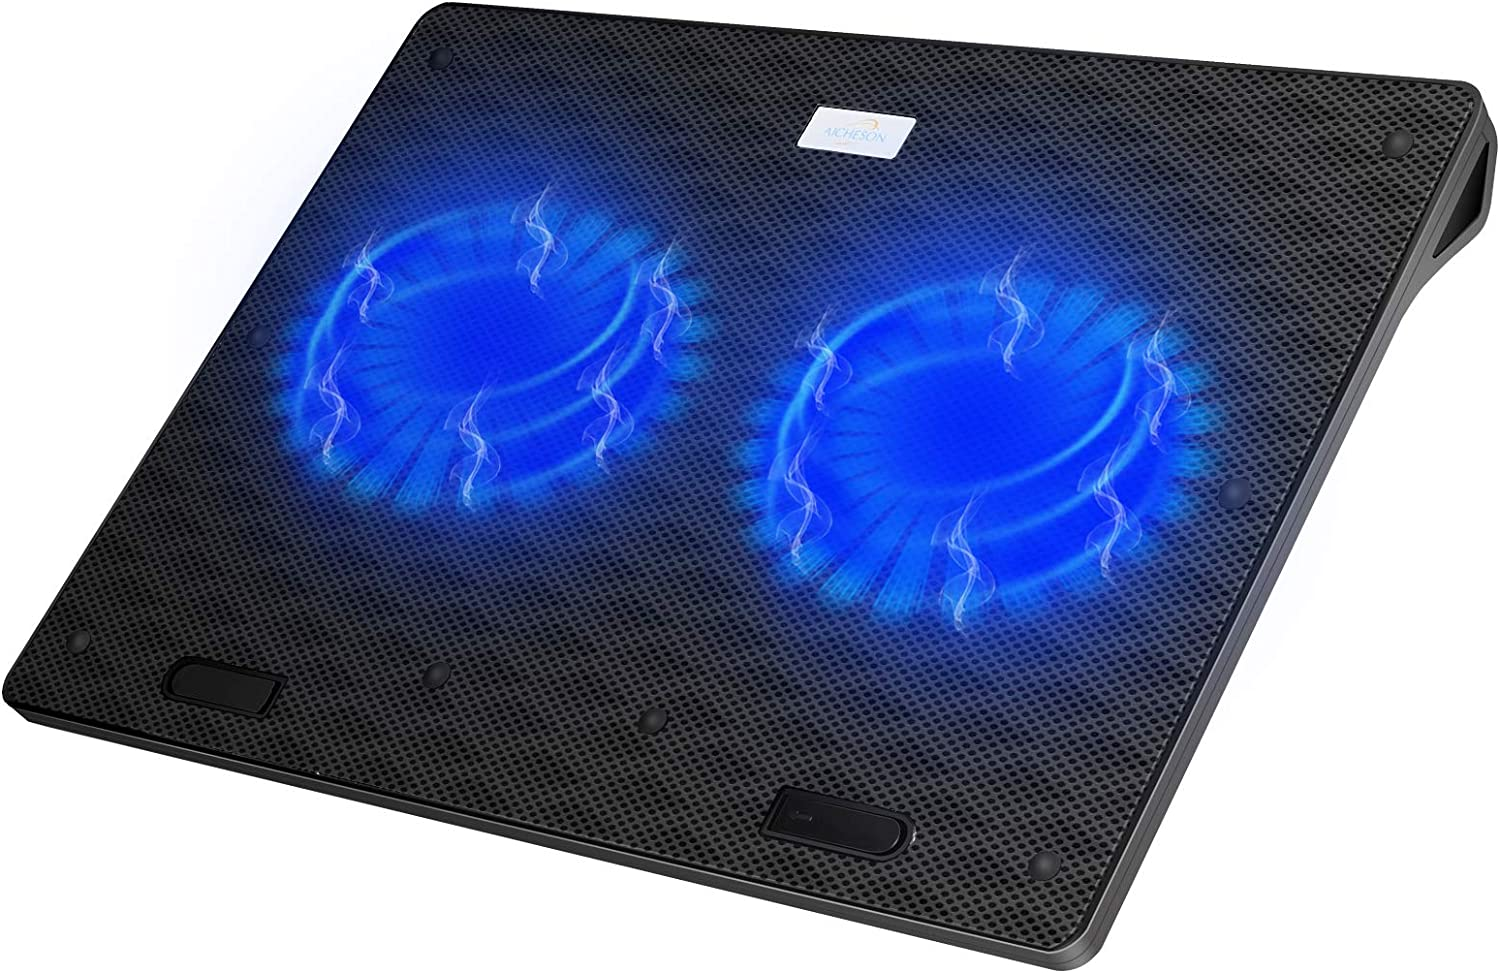 AICHESON Laptop Cooler Cooling Pad with 2 Cooling Fans for 15-17 Inch Notebook Laptops